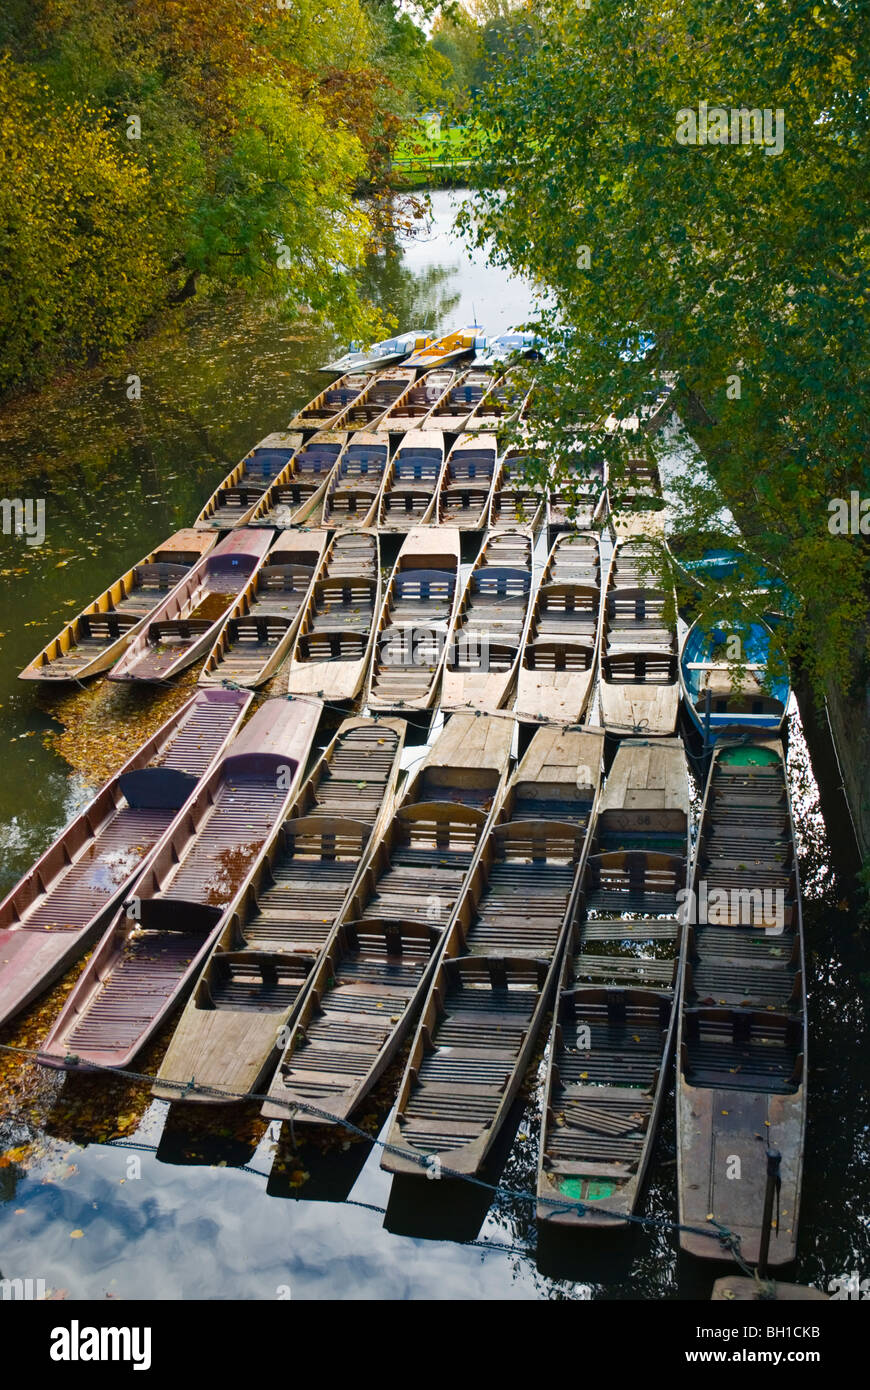 Chaffeured punts at Cherwell canal Oxford England UK Europe - Stock Image